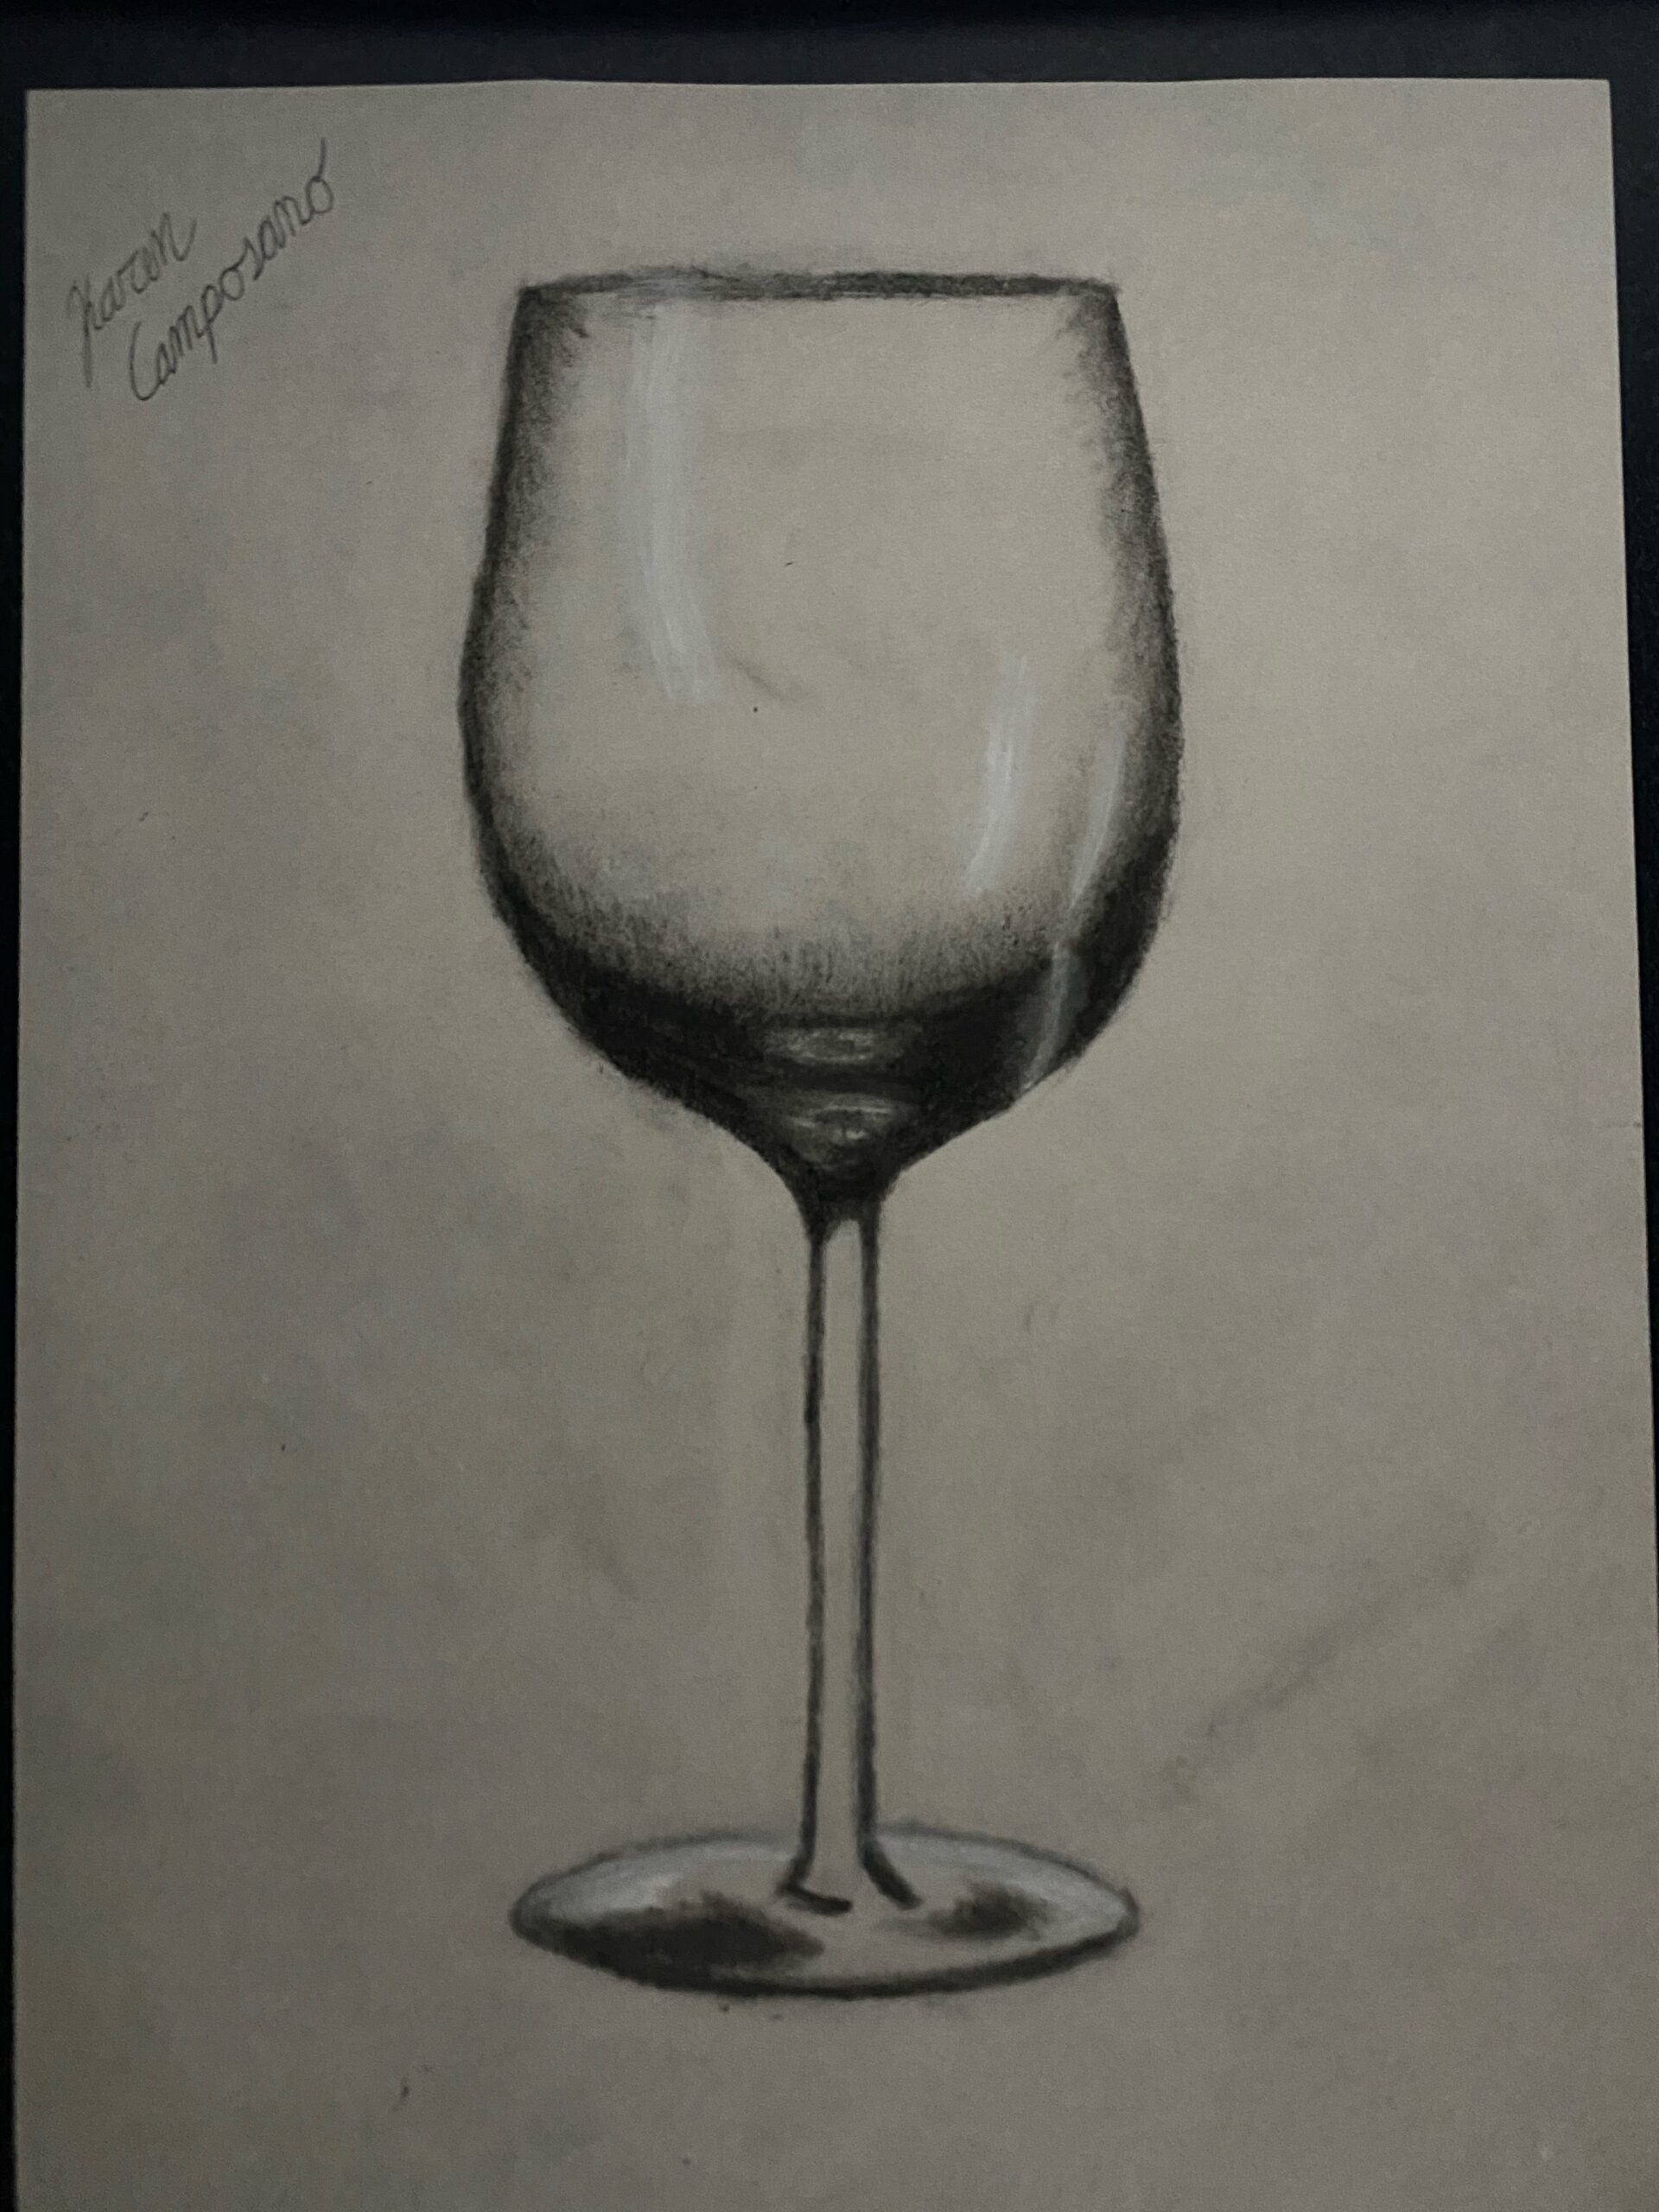 wine glass drawn in charcoal